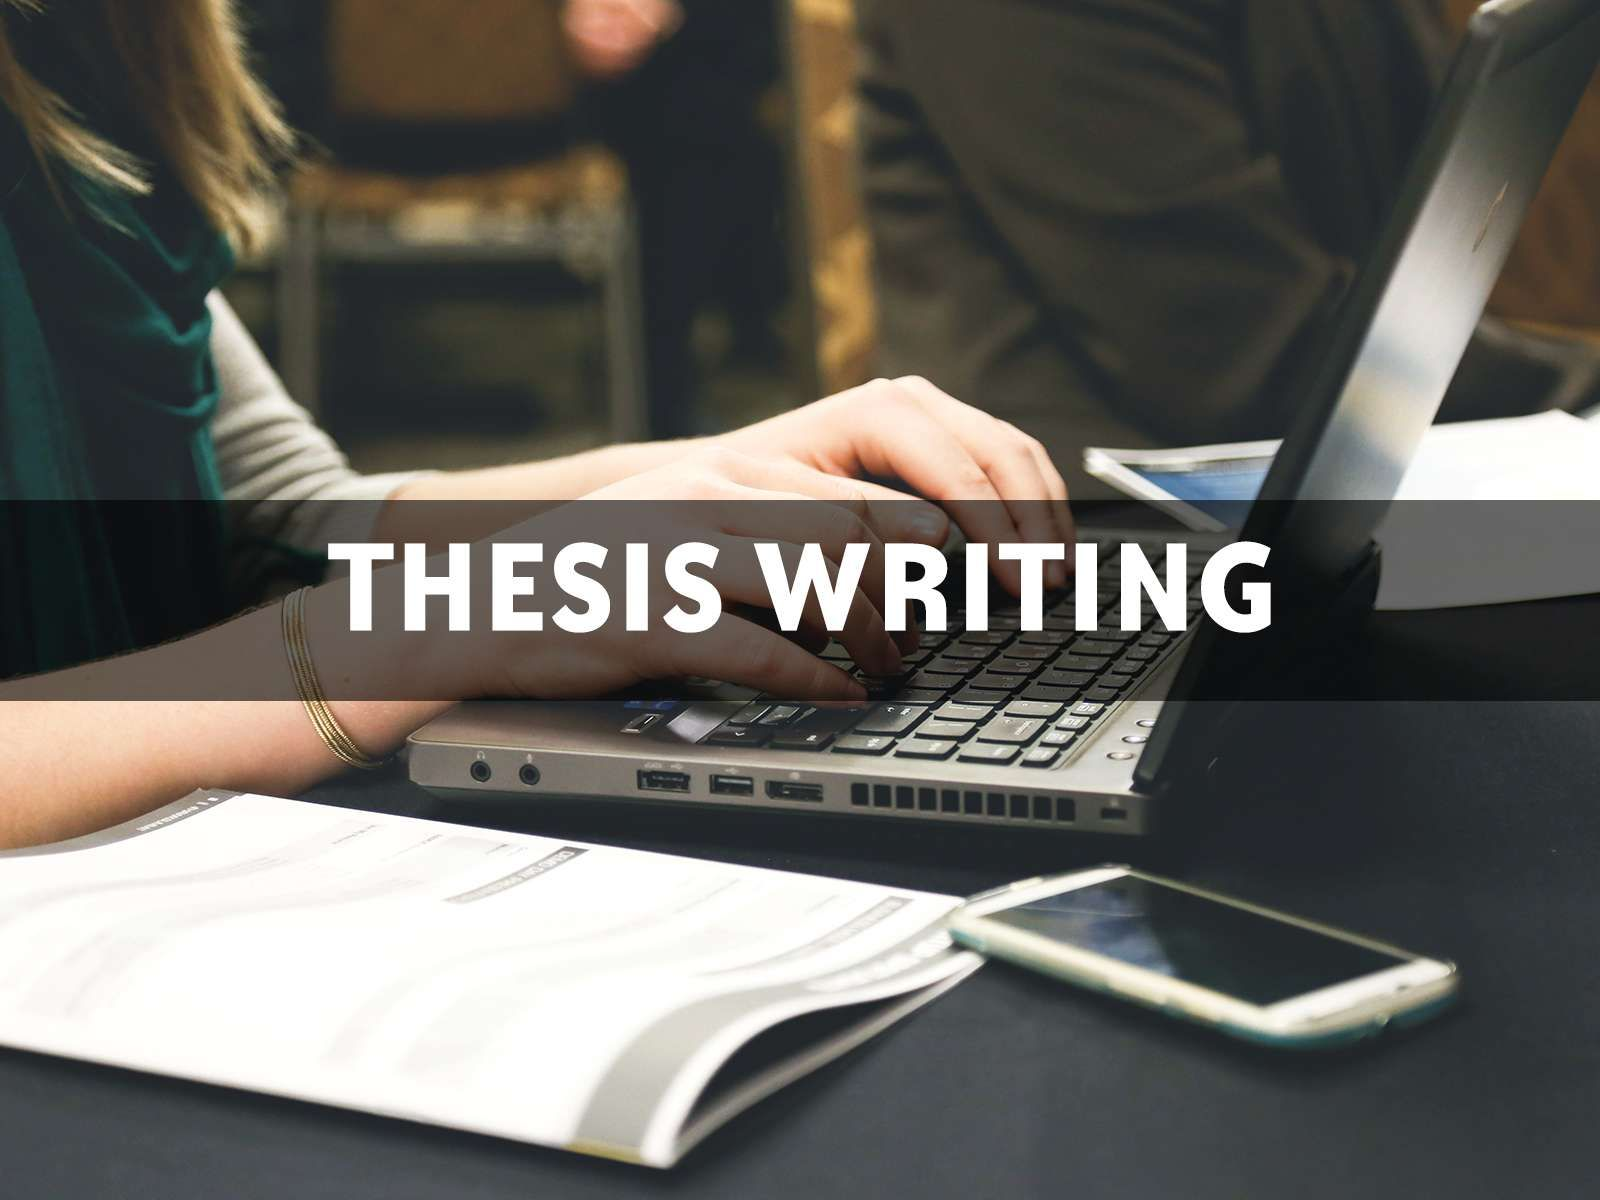 written thesis proposal A well-written introduction is the most efficient way to hook your reader and set the context  • how will my research proposal address my training needs as.